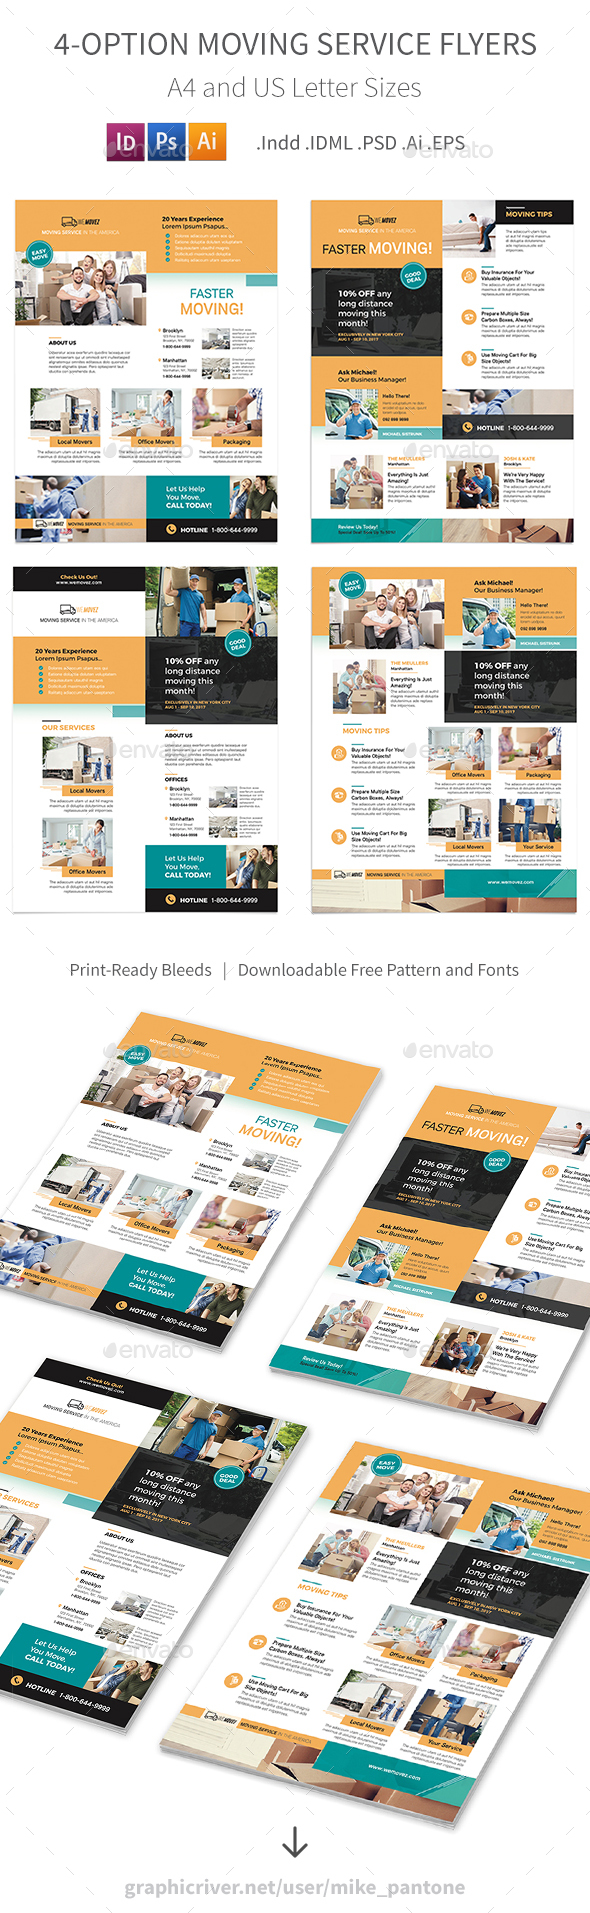 GraphicRiver Moving Service Flyers 2 4 Options 20893787